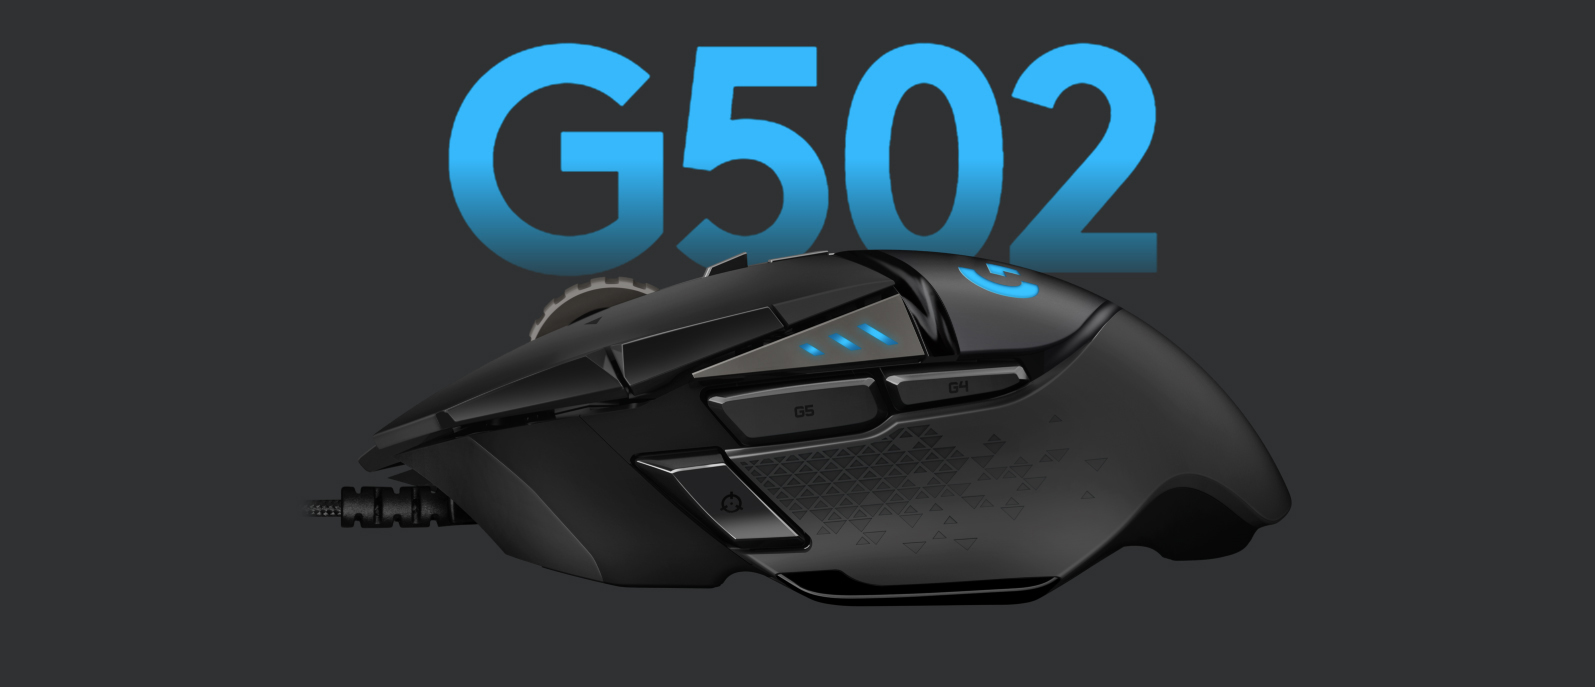 REVIEW - Logitech G502 HERO Gaming Mouse - Everyday Metal